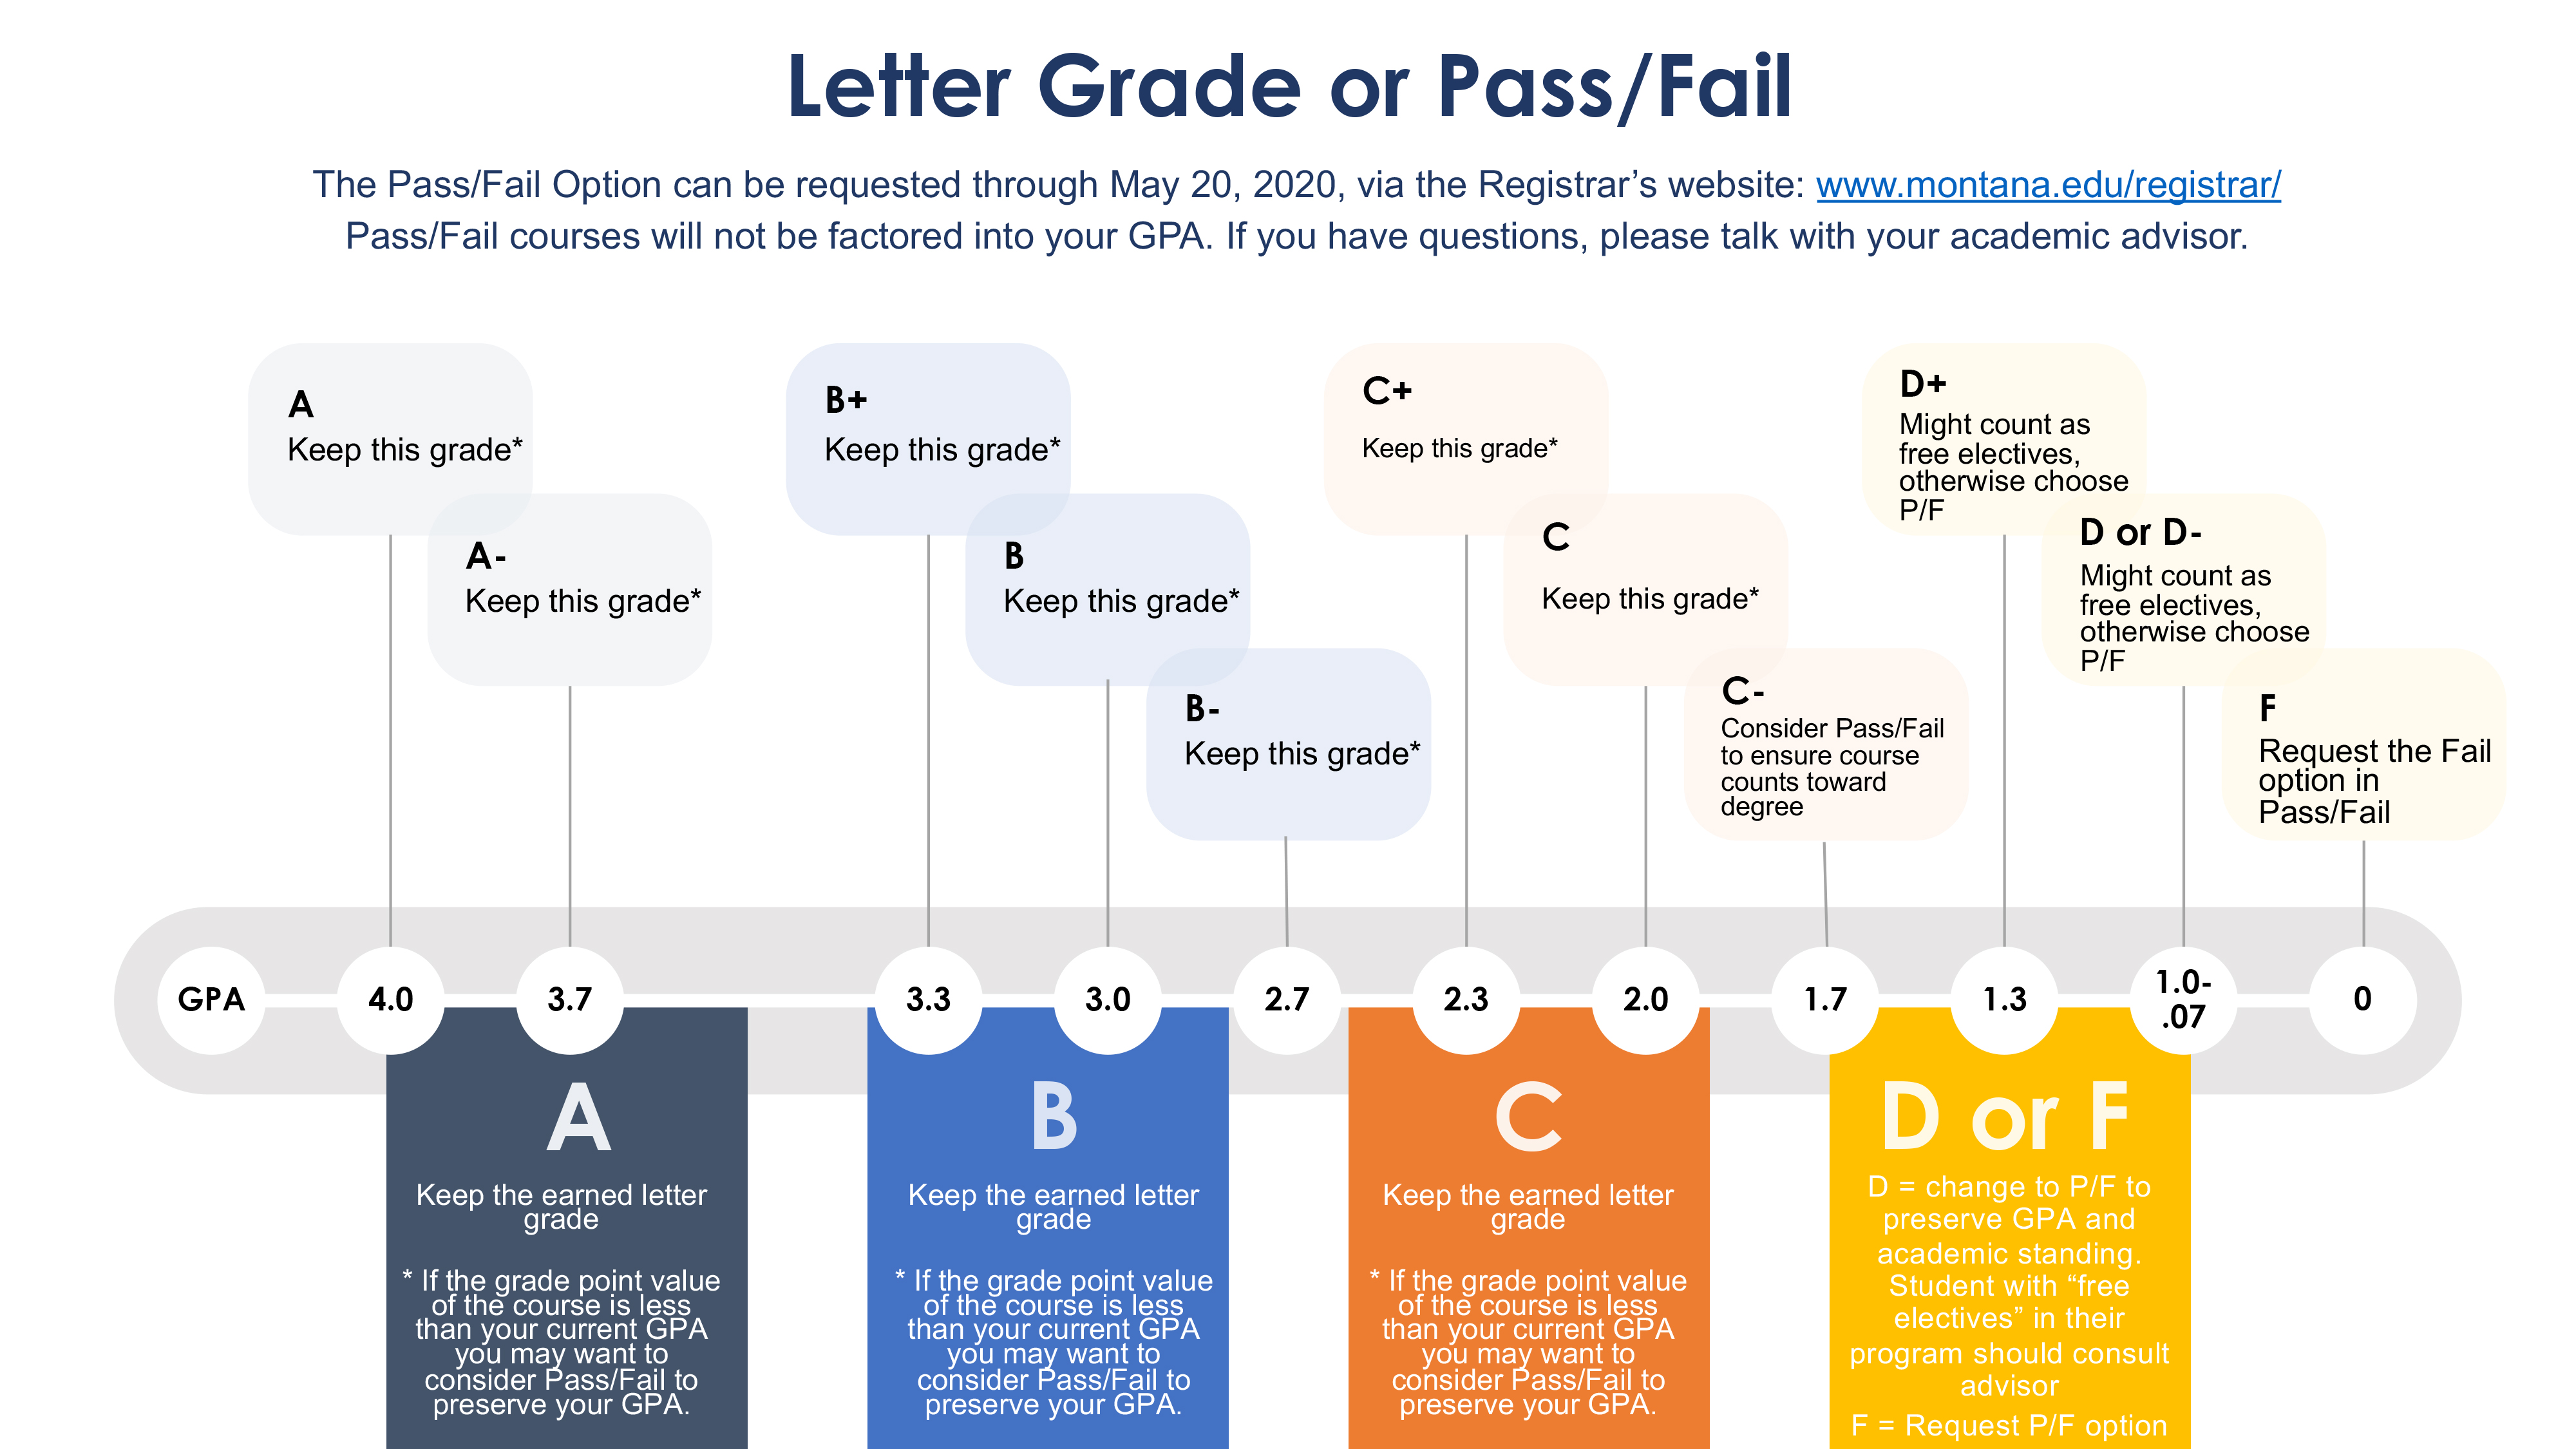 This graph is intended to be a guide for students to evaluate their progress in each individual course and to make a decision regarding whether to keep the earned letter grade they will receive at the end of the semester or to switch to the pass fail option. It explains to students based on their perceived progress in each individual course what the recommendation is in order to preserve current gpa and/or academic standing and also to ensure that a course is counted toward various degree requirements. In general, the recommendation for each course is as follows: If a student predicts that he/she will earn an A or an A- in the course, it is best to keep the earned letter grade, with the caveat that If the grade point value of the course is less than the student's' current GPA, he/she may want to consider the Pass Fail option in order to preserve his/her GPA. If a student predicts that he/she will earn a B+, B or B- in the course, it is best to keep the earned letter grade, with the caveat that If the grade point value of the course is less than the student's current GPA, he/she may want to consider the pass fail option in order to preserve his/her GPA. If a student predicts that he/she will earn a C+ or C in the course, it is best to keep the earned letter grade, with the caveat that If the grade point value of the course is less than the student's current GPA, he/she may want to consider the pass fail option in order to preserve his/her GPA. If a student predicts he/she will  earn a C- in the course, to consider the pass fail optin in order to ensure course counts toward degree. If the studen predicts he/she will earn a D+, D or D-, that the course might count as free electives, but that it is otherwise best to change to the pass fail option in order to preserve GPA and academic standing. If the student predicts earning an F in the course, it is best to request a Fail in the pass fail option, as this fail will not negatively impact his/her GPA, whereas an F earned in the default letter grade scale will negatively impact his/her GPA.